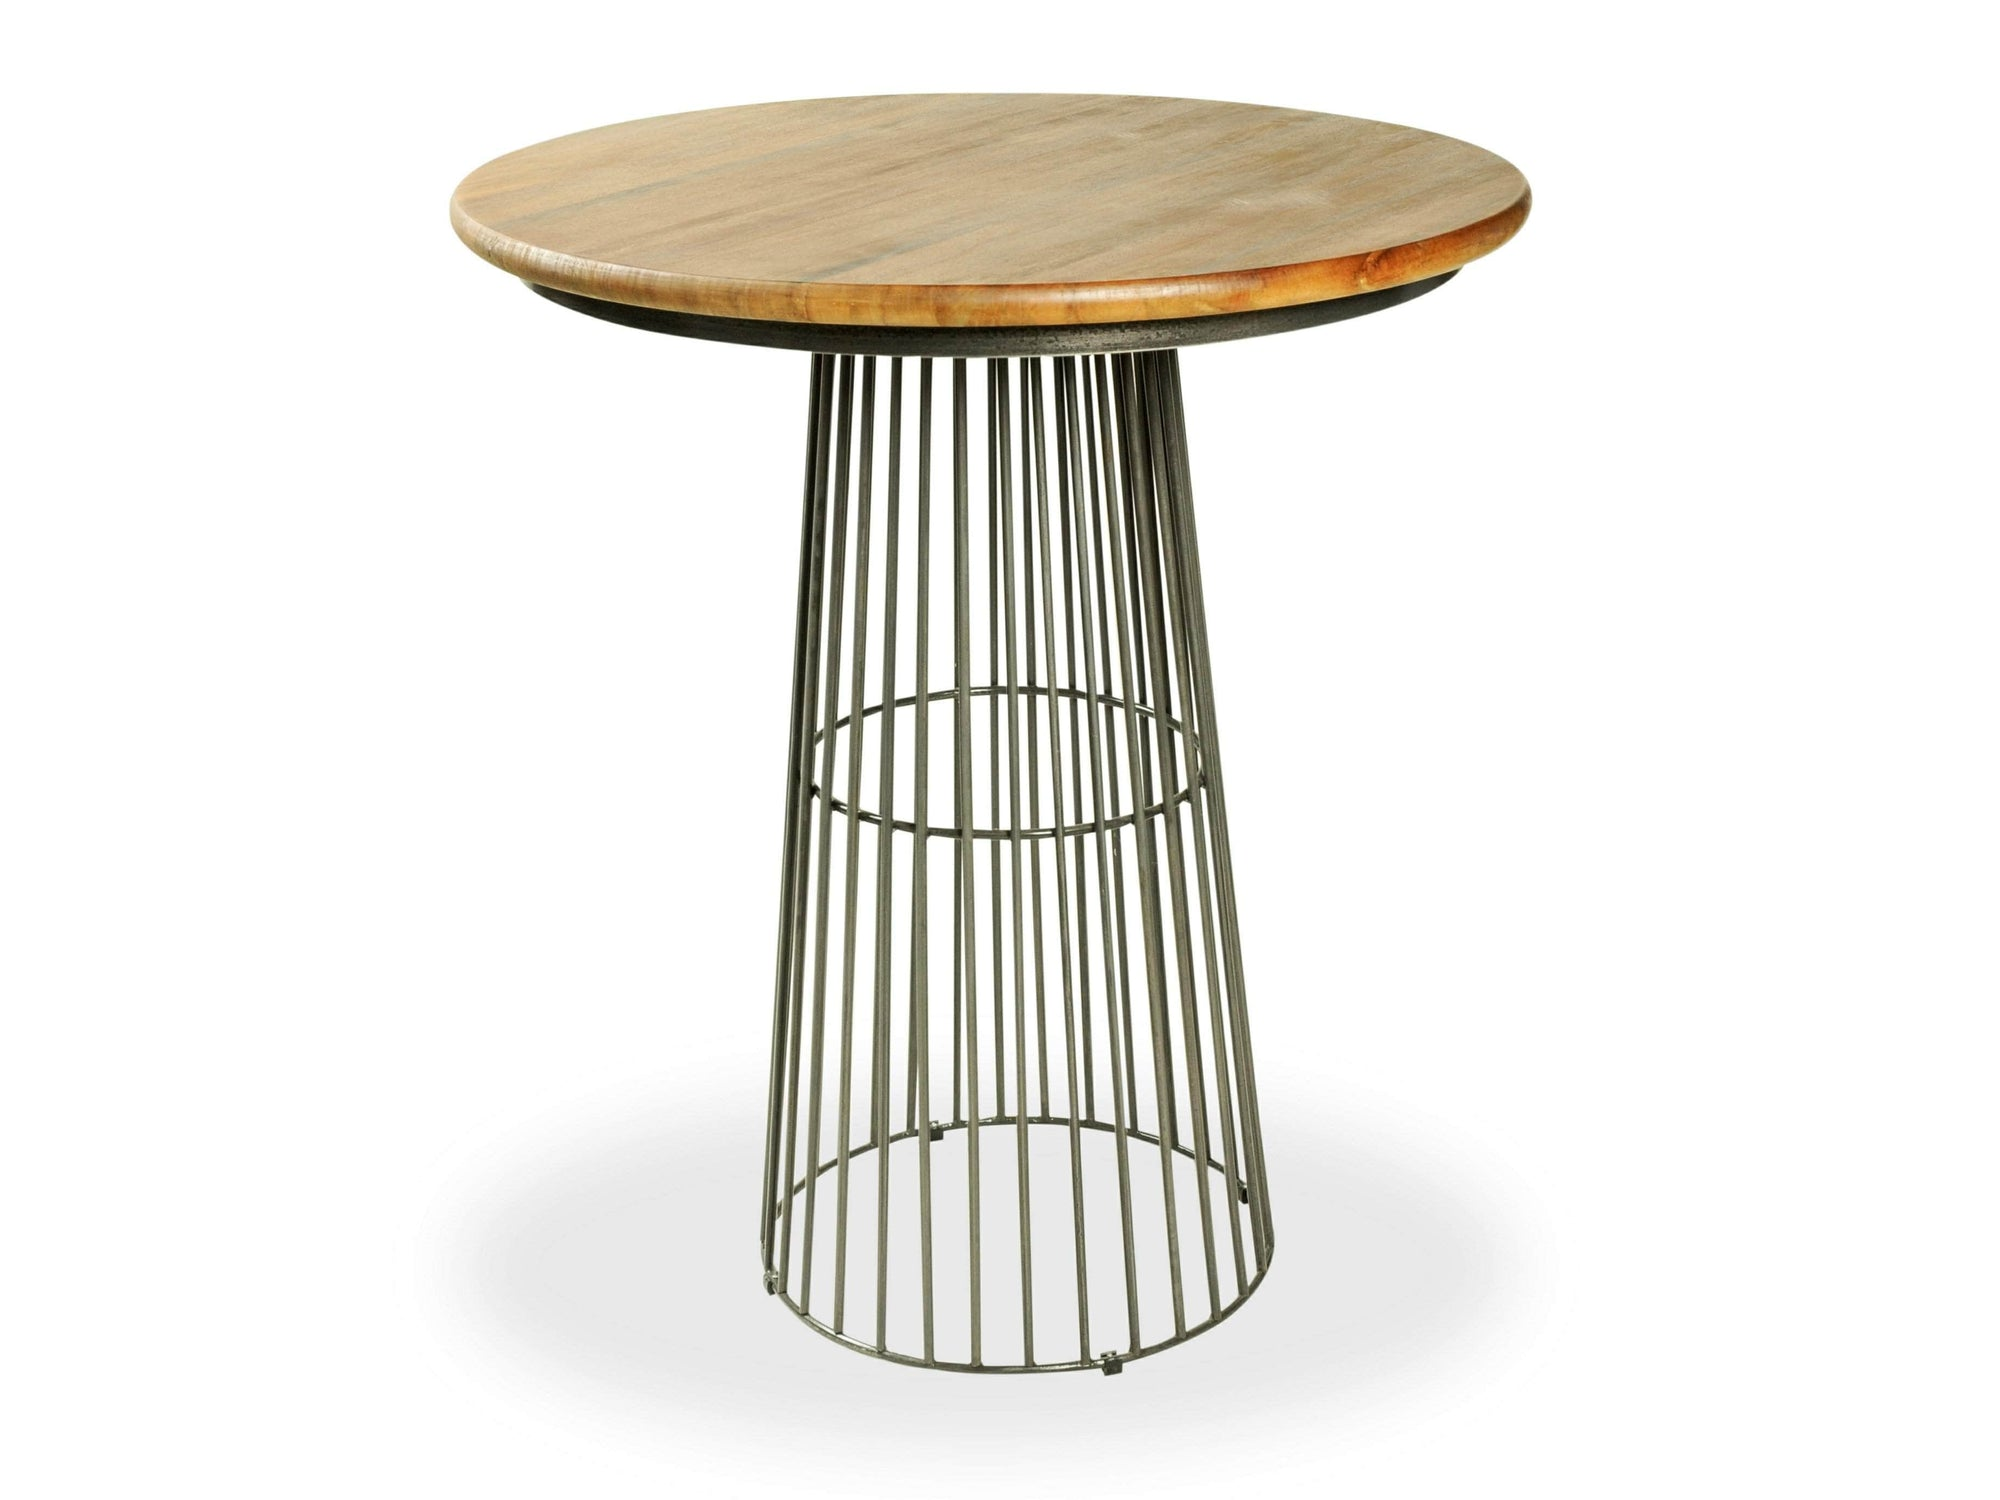 London Industrial Round Bar Table